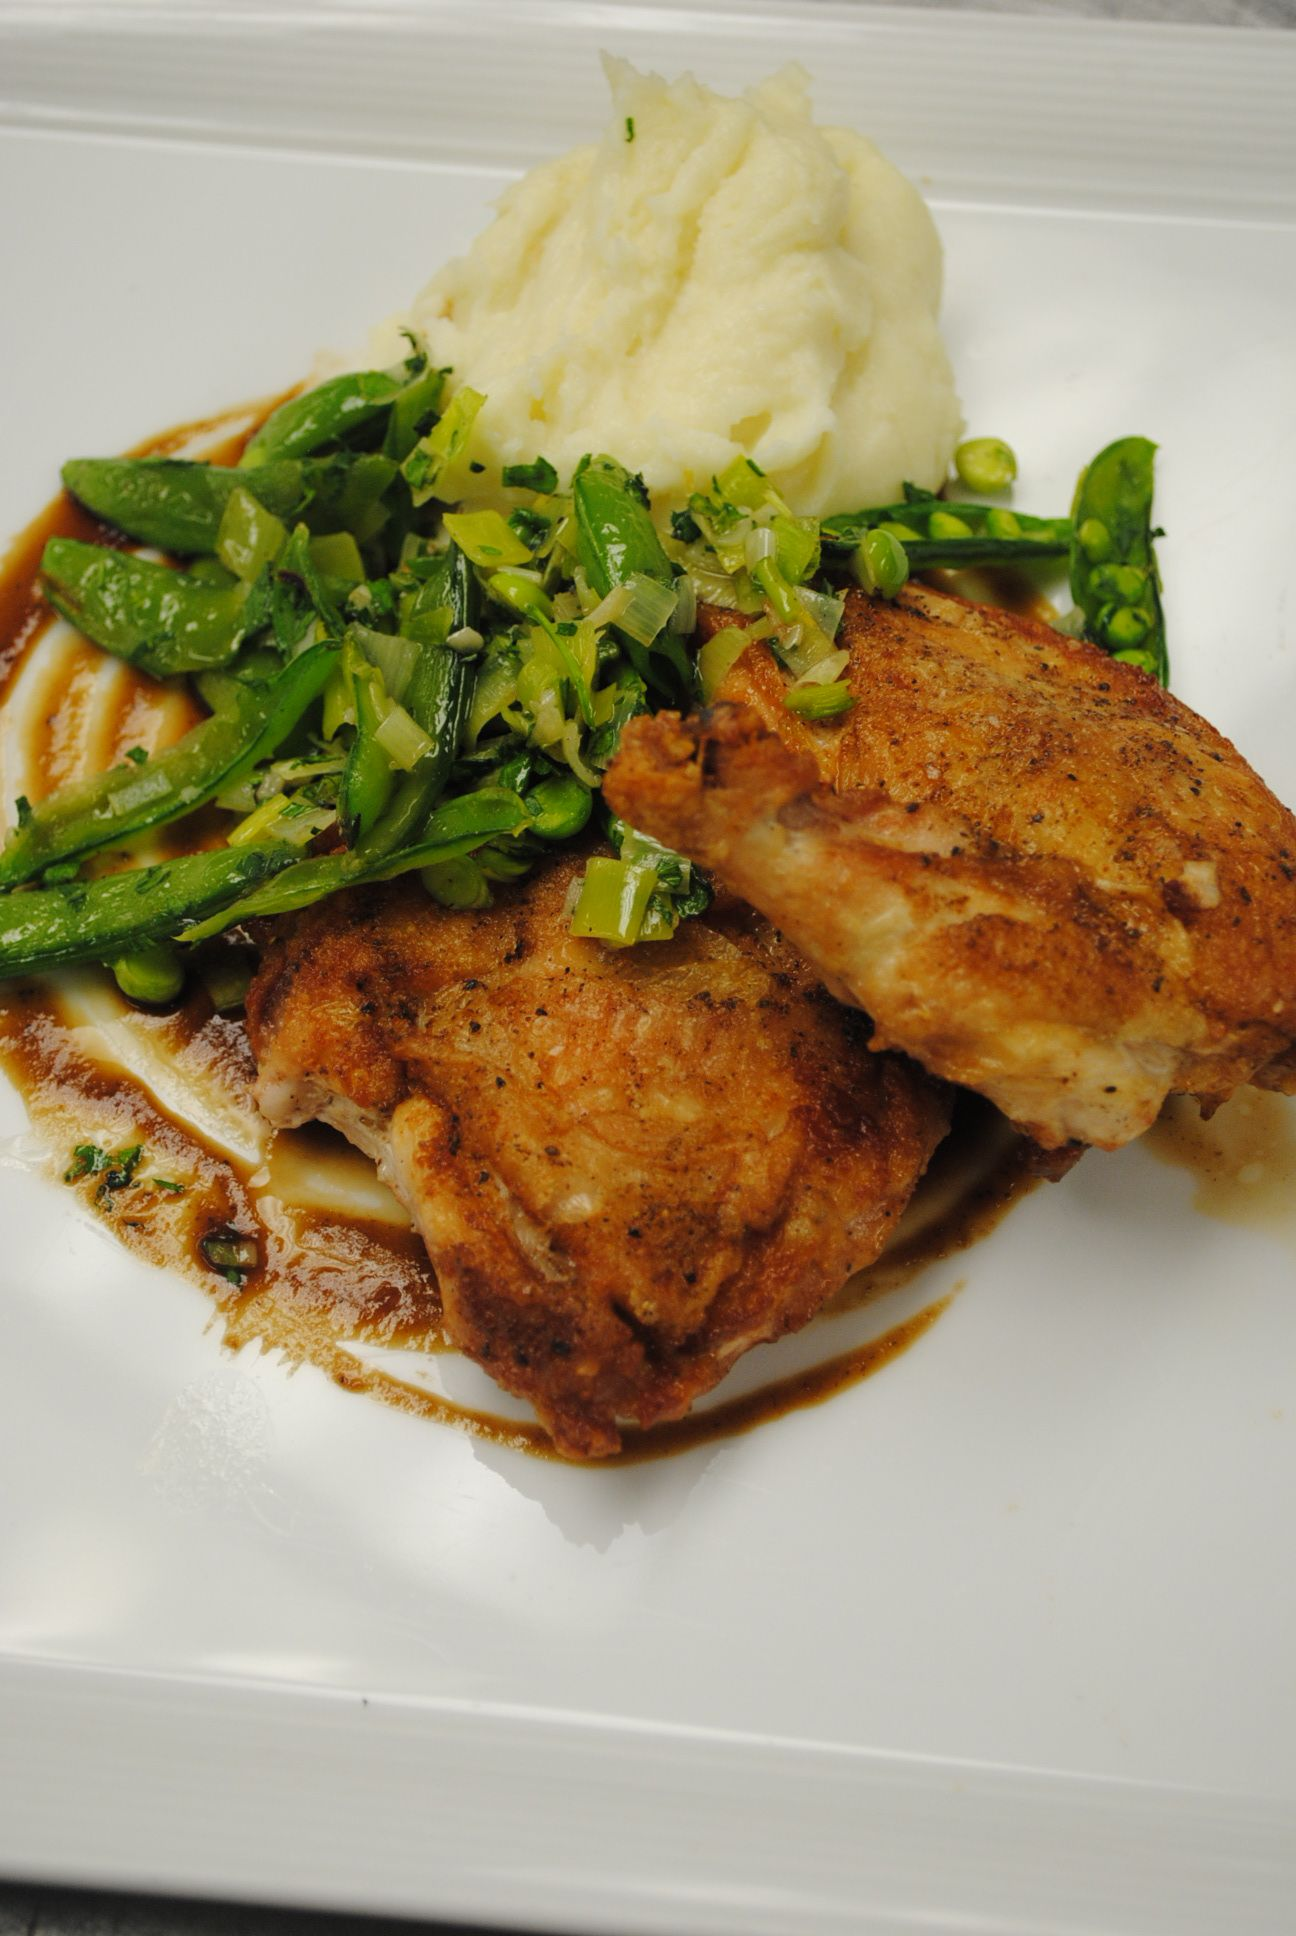 Sautéed Free Range Chicken with Leeks, Sugar Snap Peas and